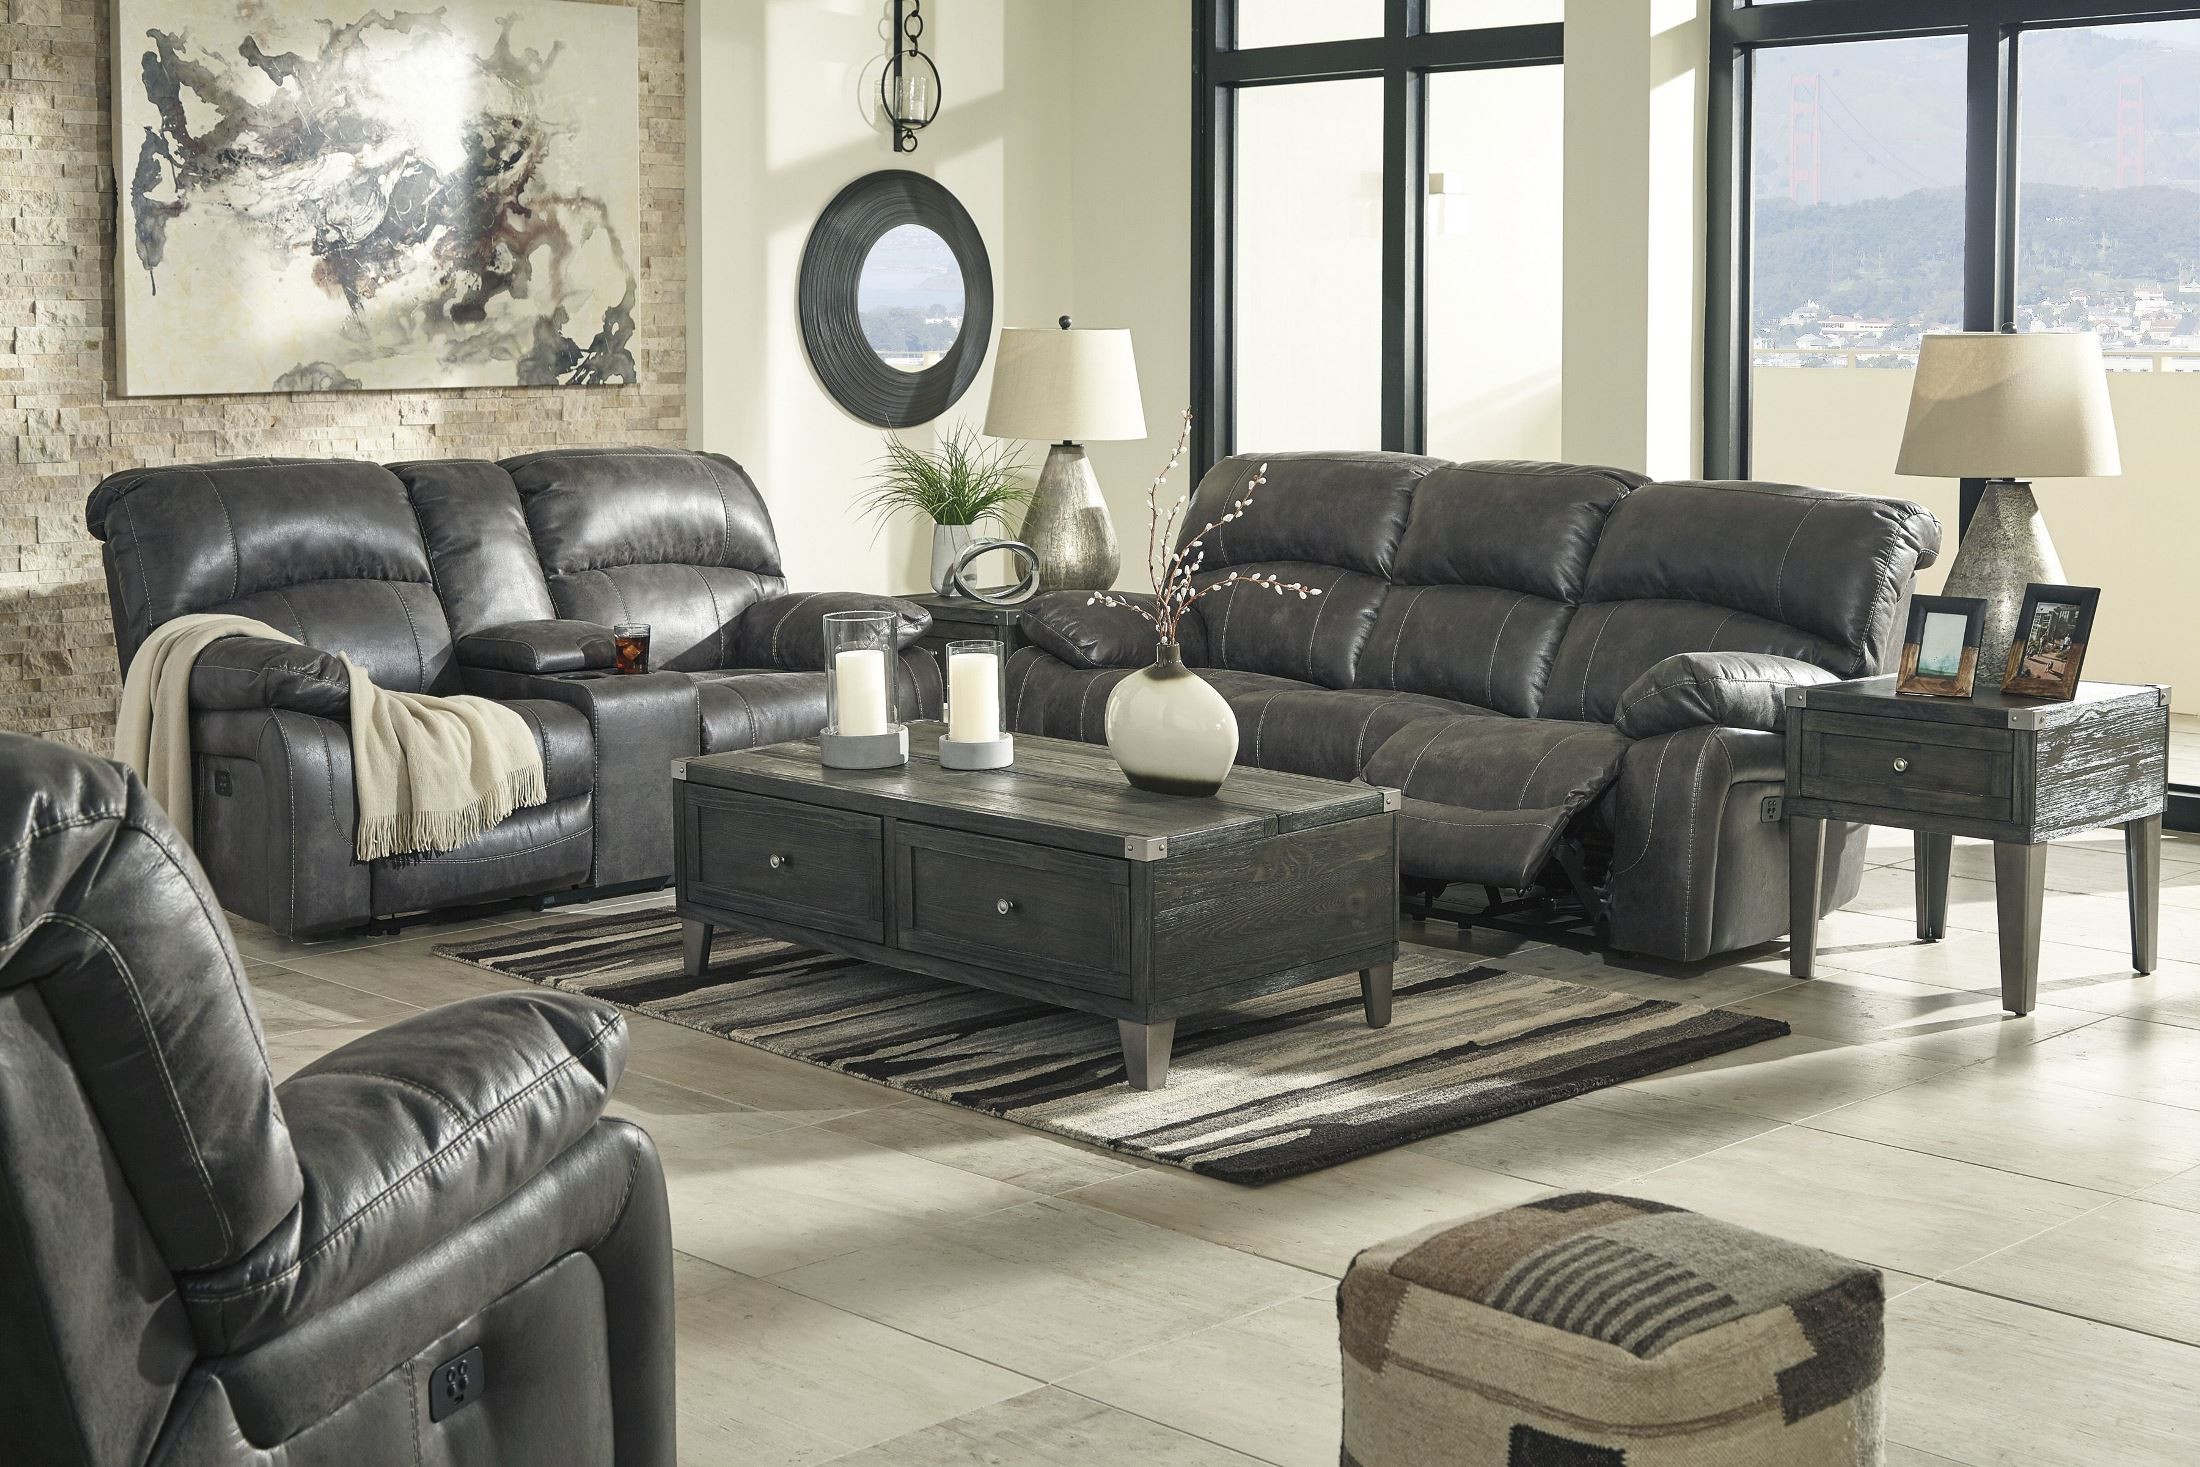 Reclining Living Room Sets and plus reclining sofa and chair and plus microfiber leather sectional and plus reclining living room furniture sets